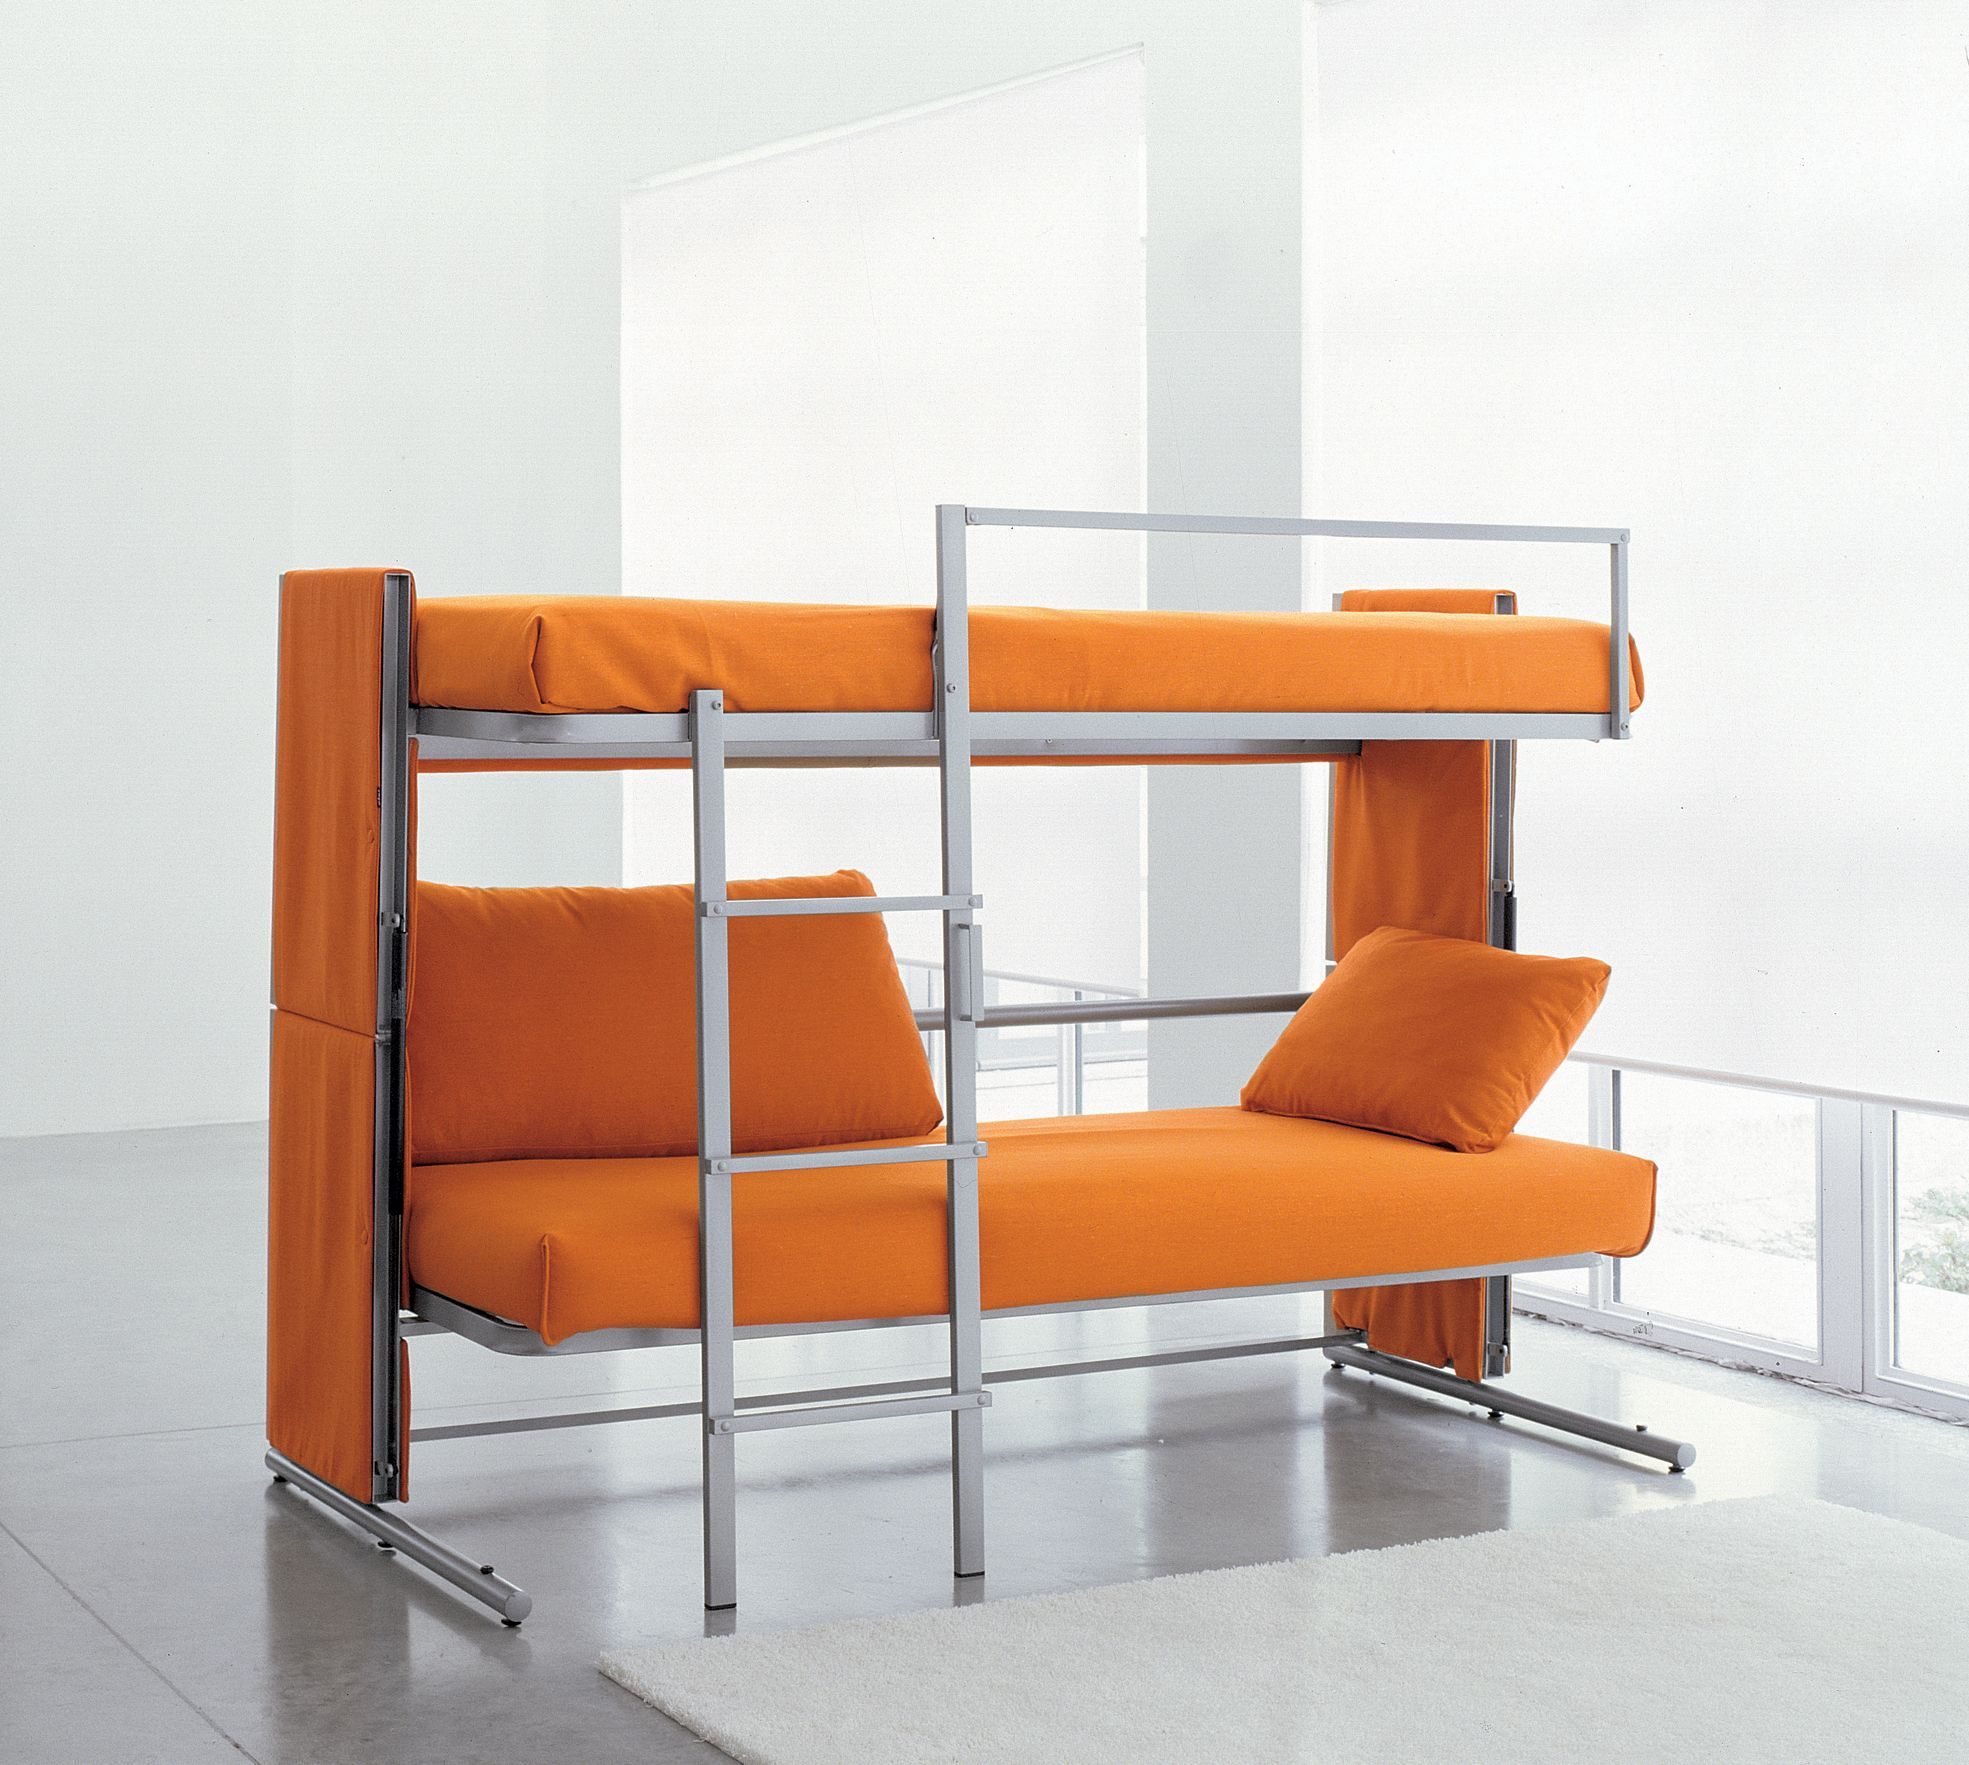 Doc Sofa Bunk Bed Couch Bunk Beds Bunk Beds Bunk Bed Designs